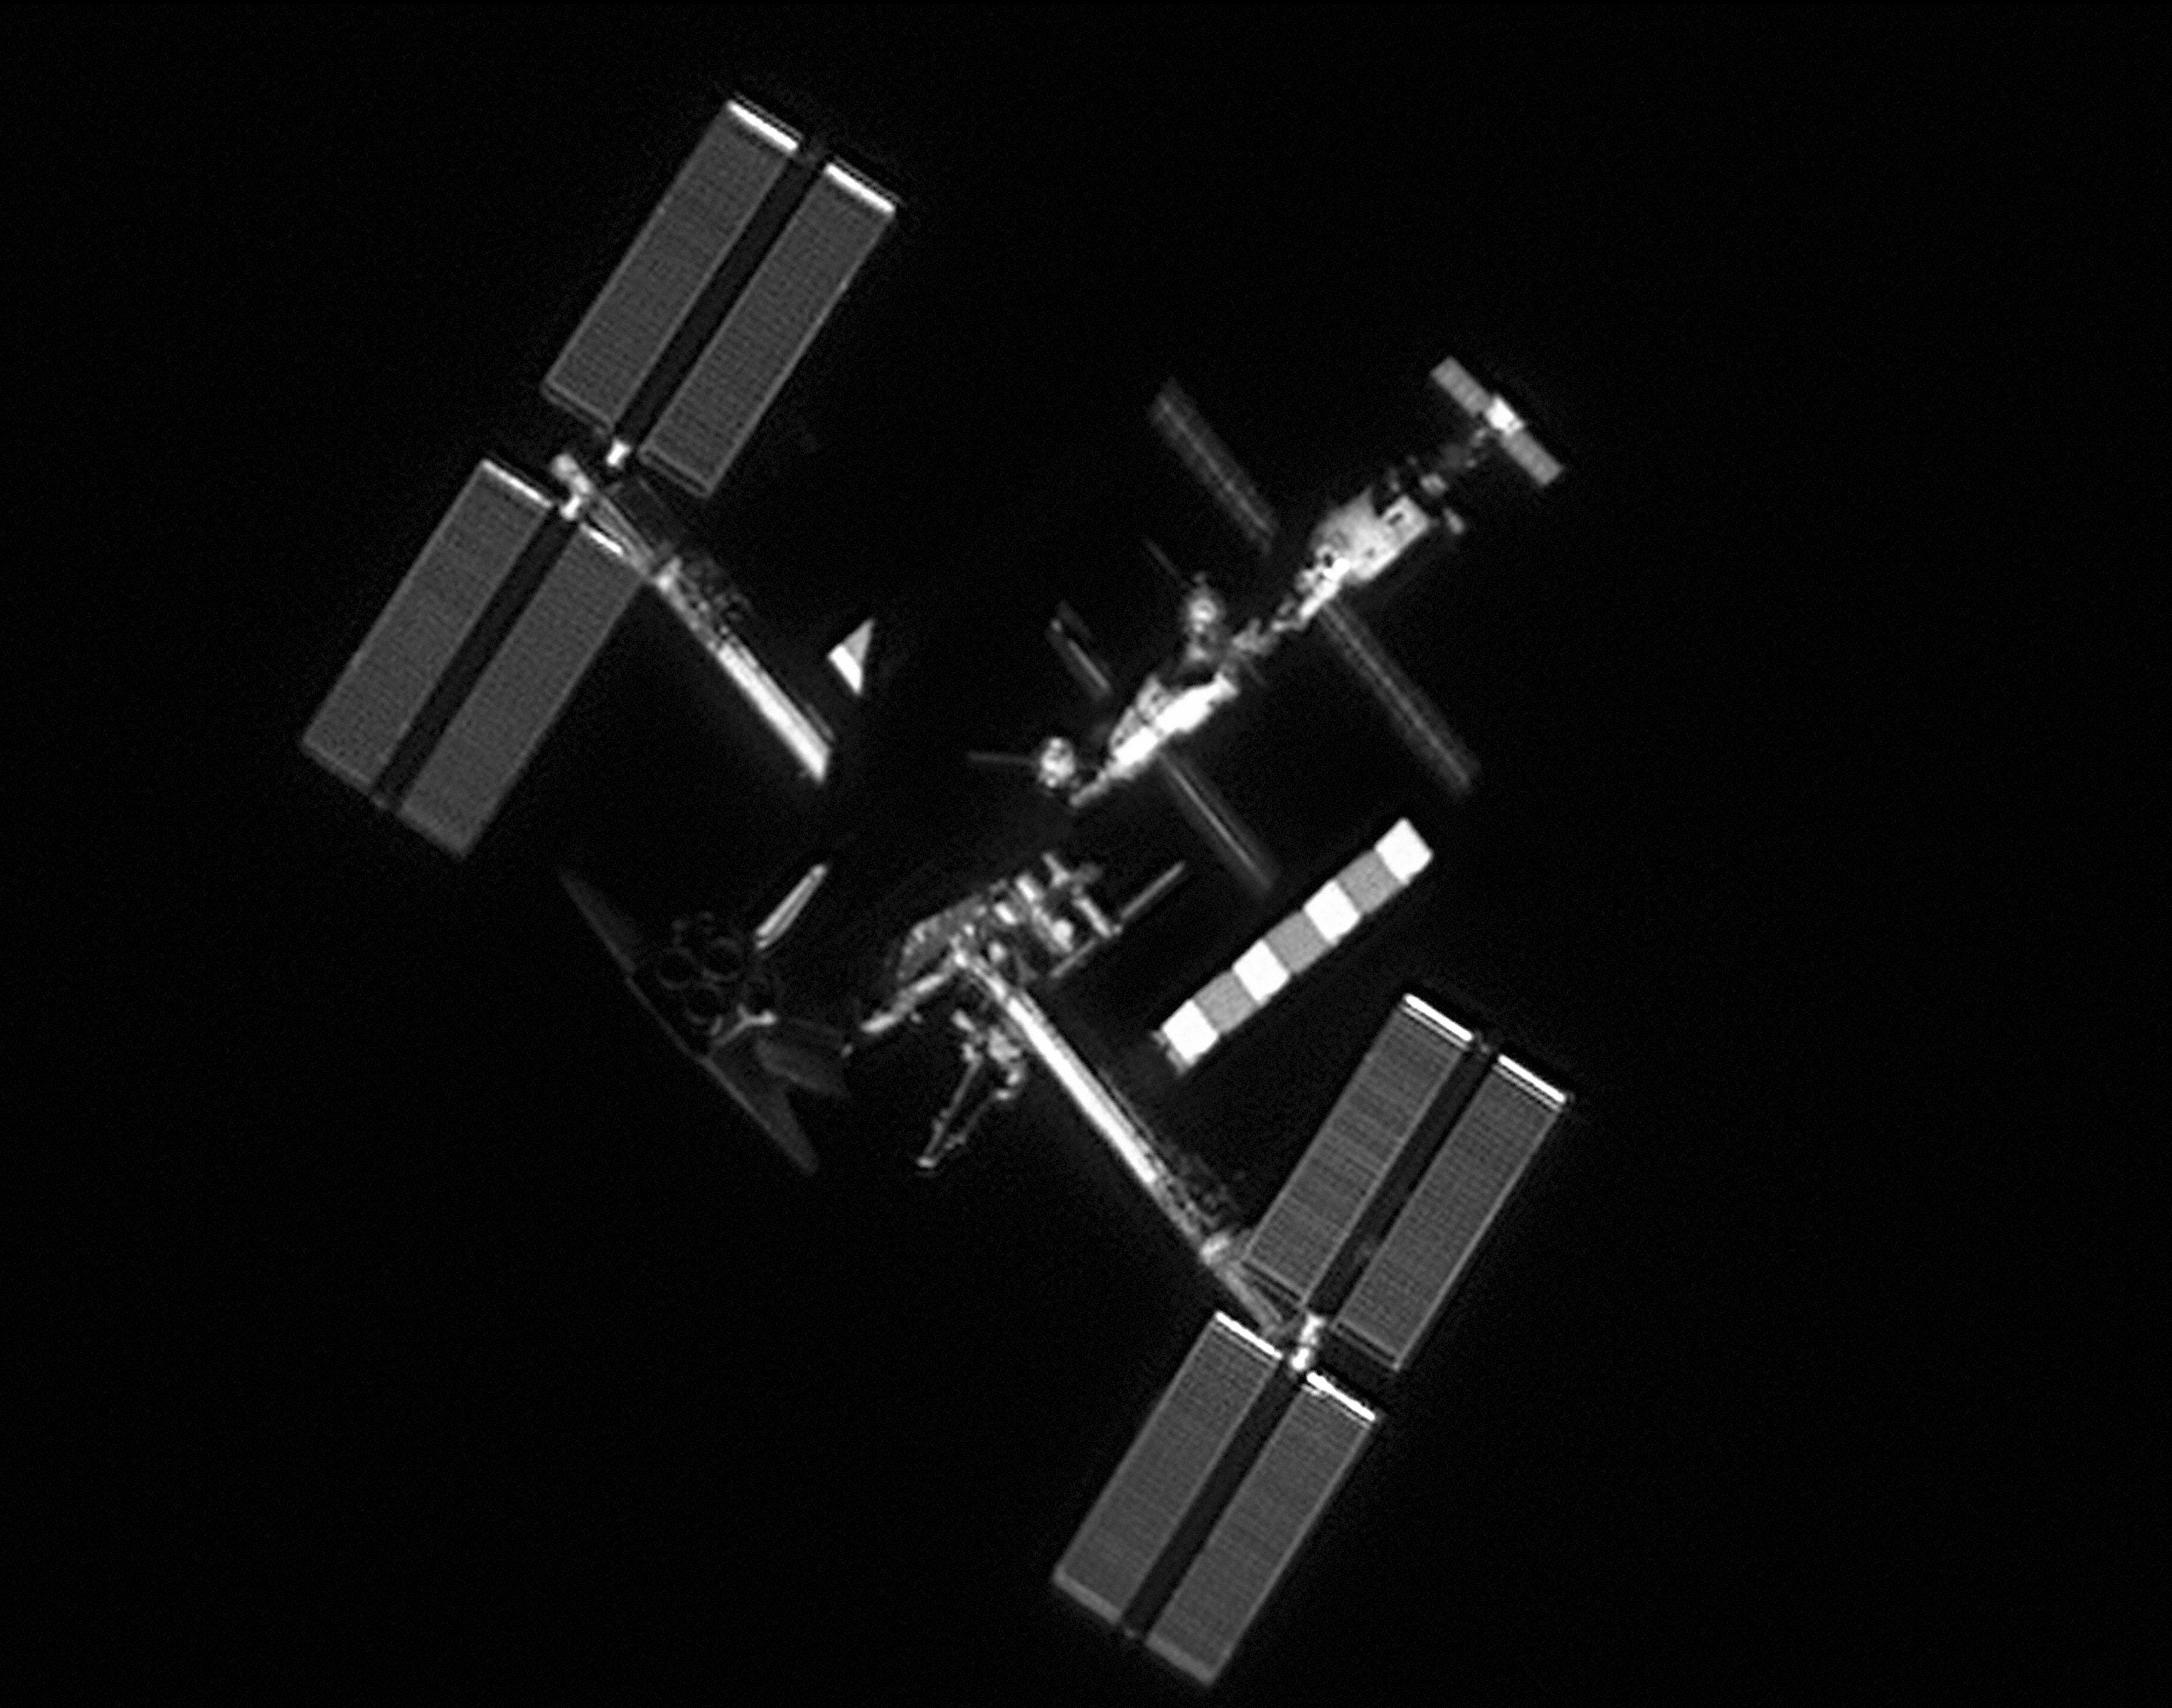 photos of the space station seen from the ground as - photo #27